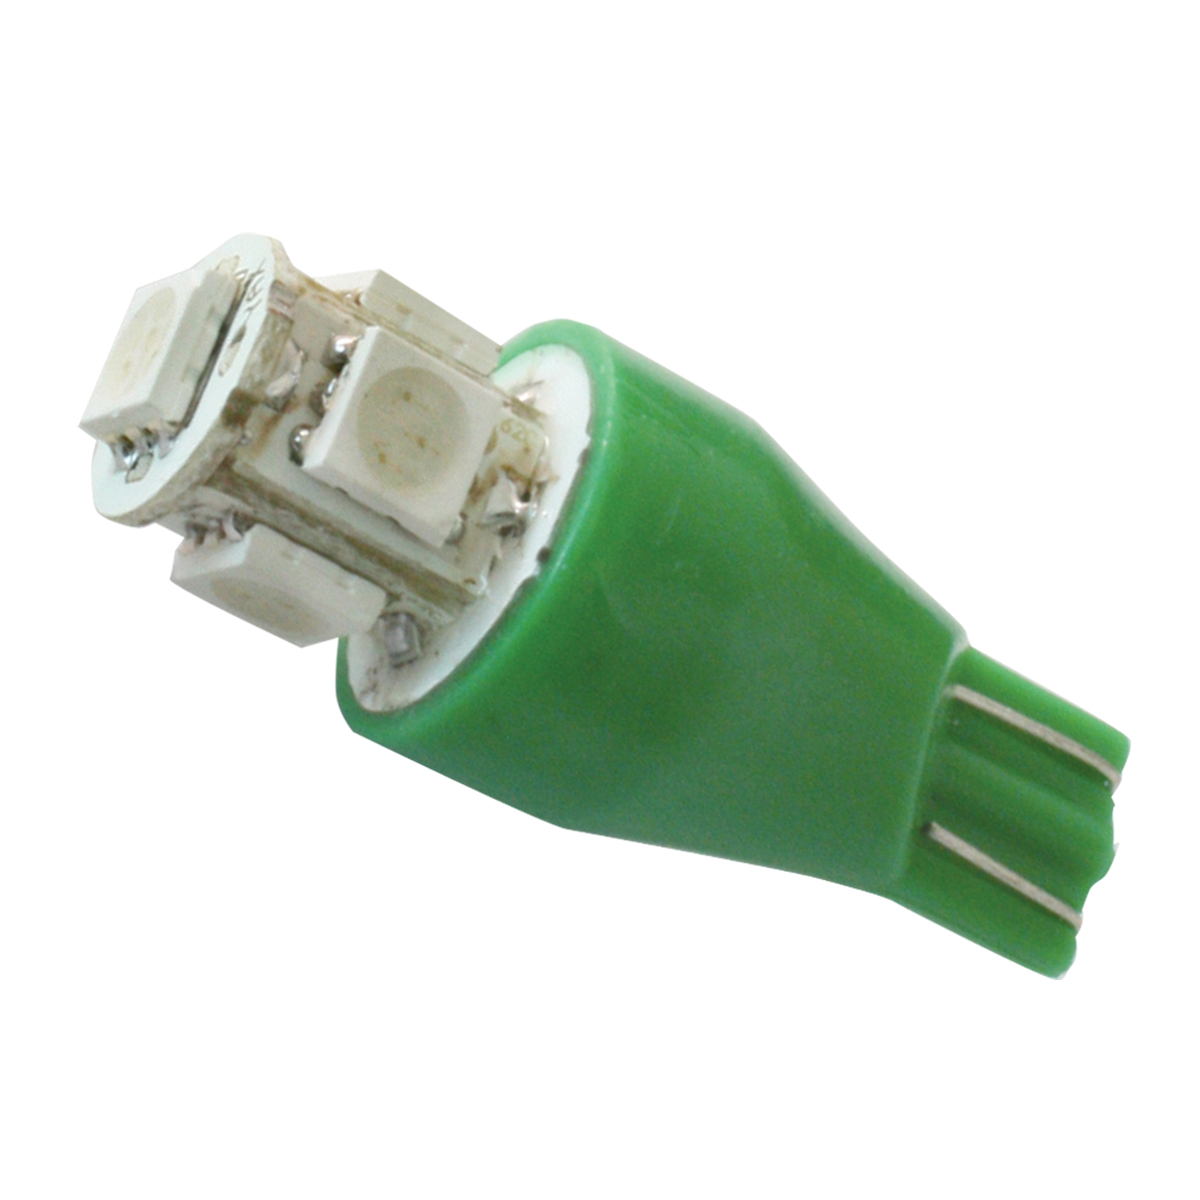 74932 Green 921/912 Tower Style 5 LED Light Bulb